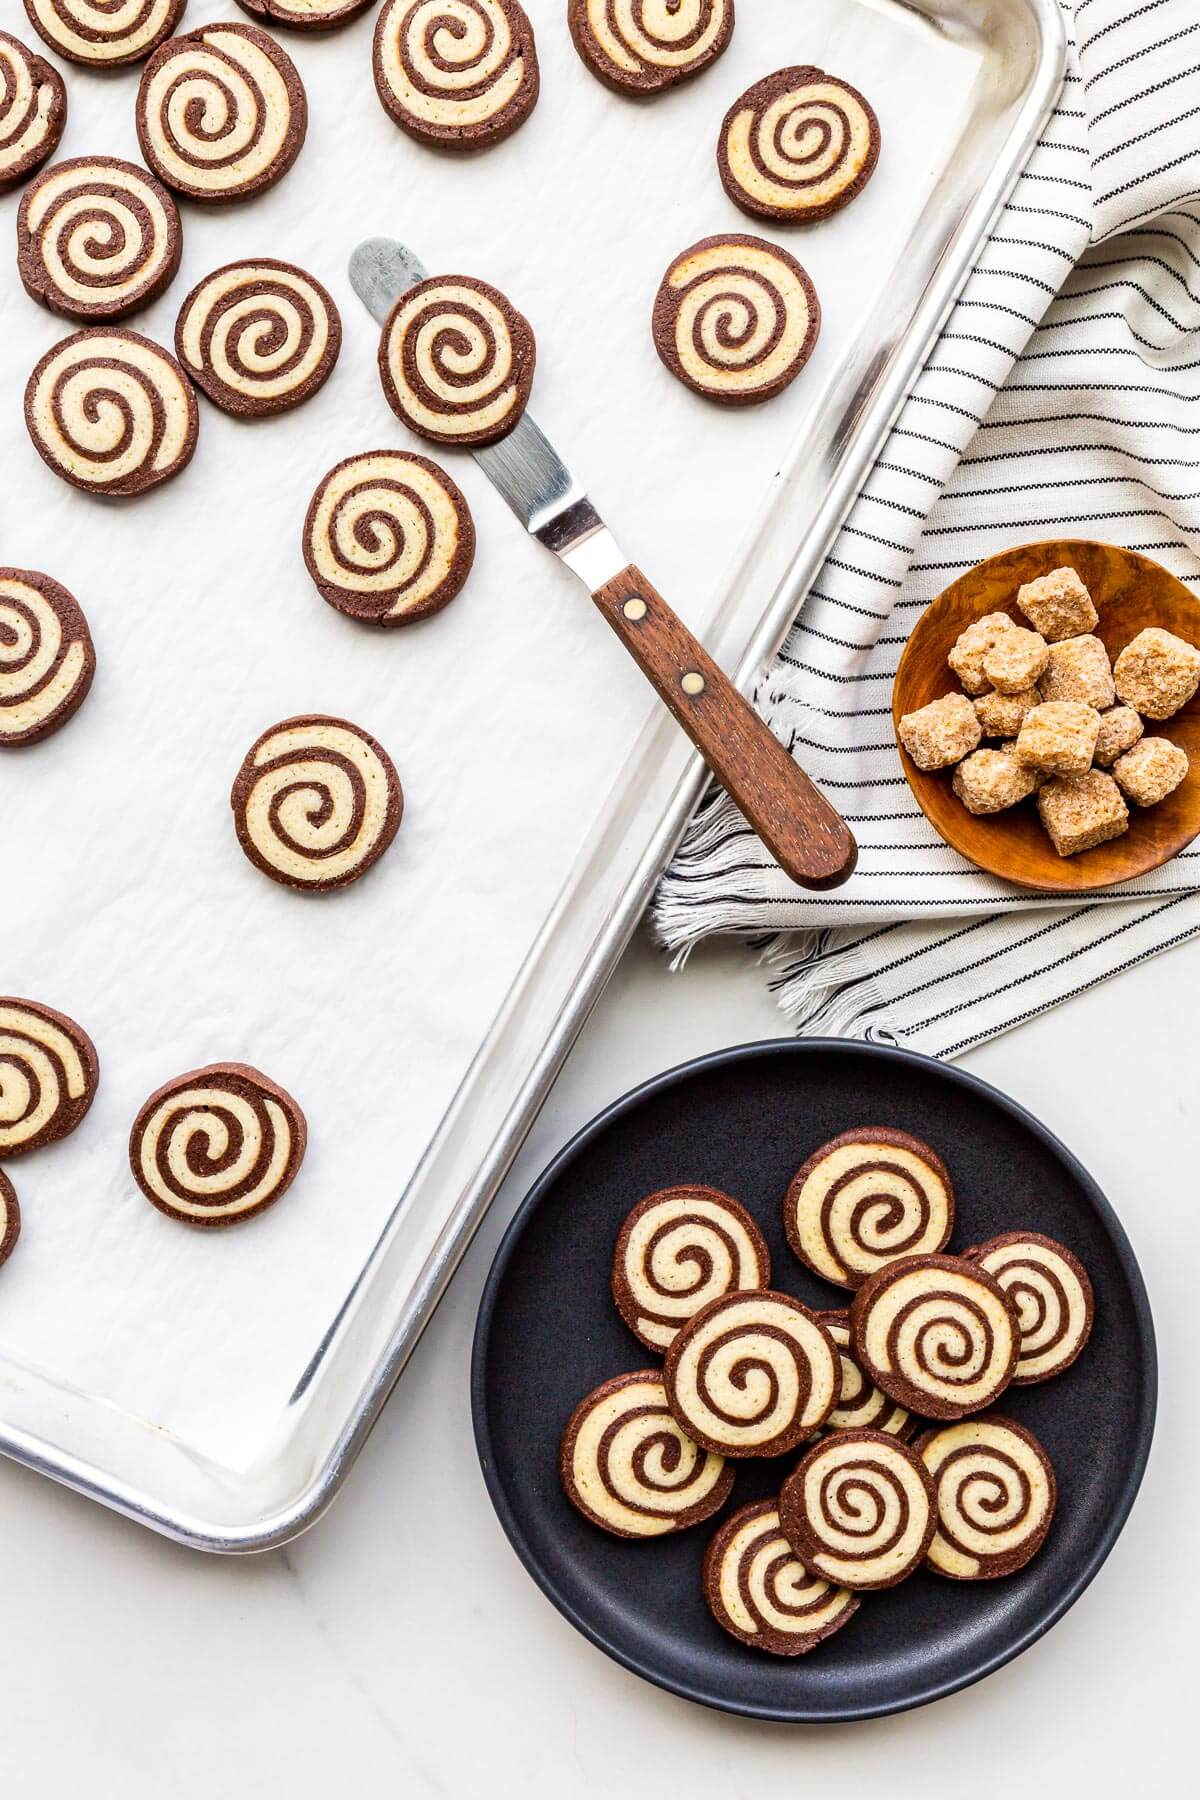 Transferring pinwheel cookies from a sheet pan to a plate to serve them.